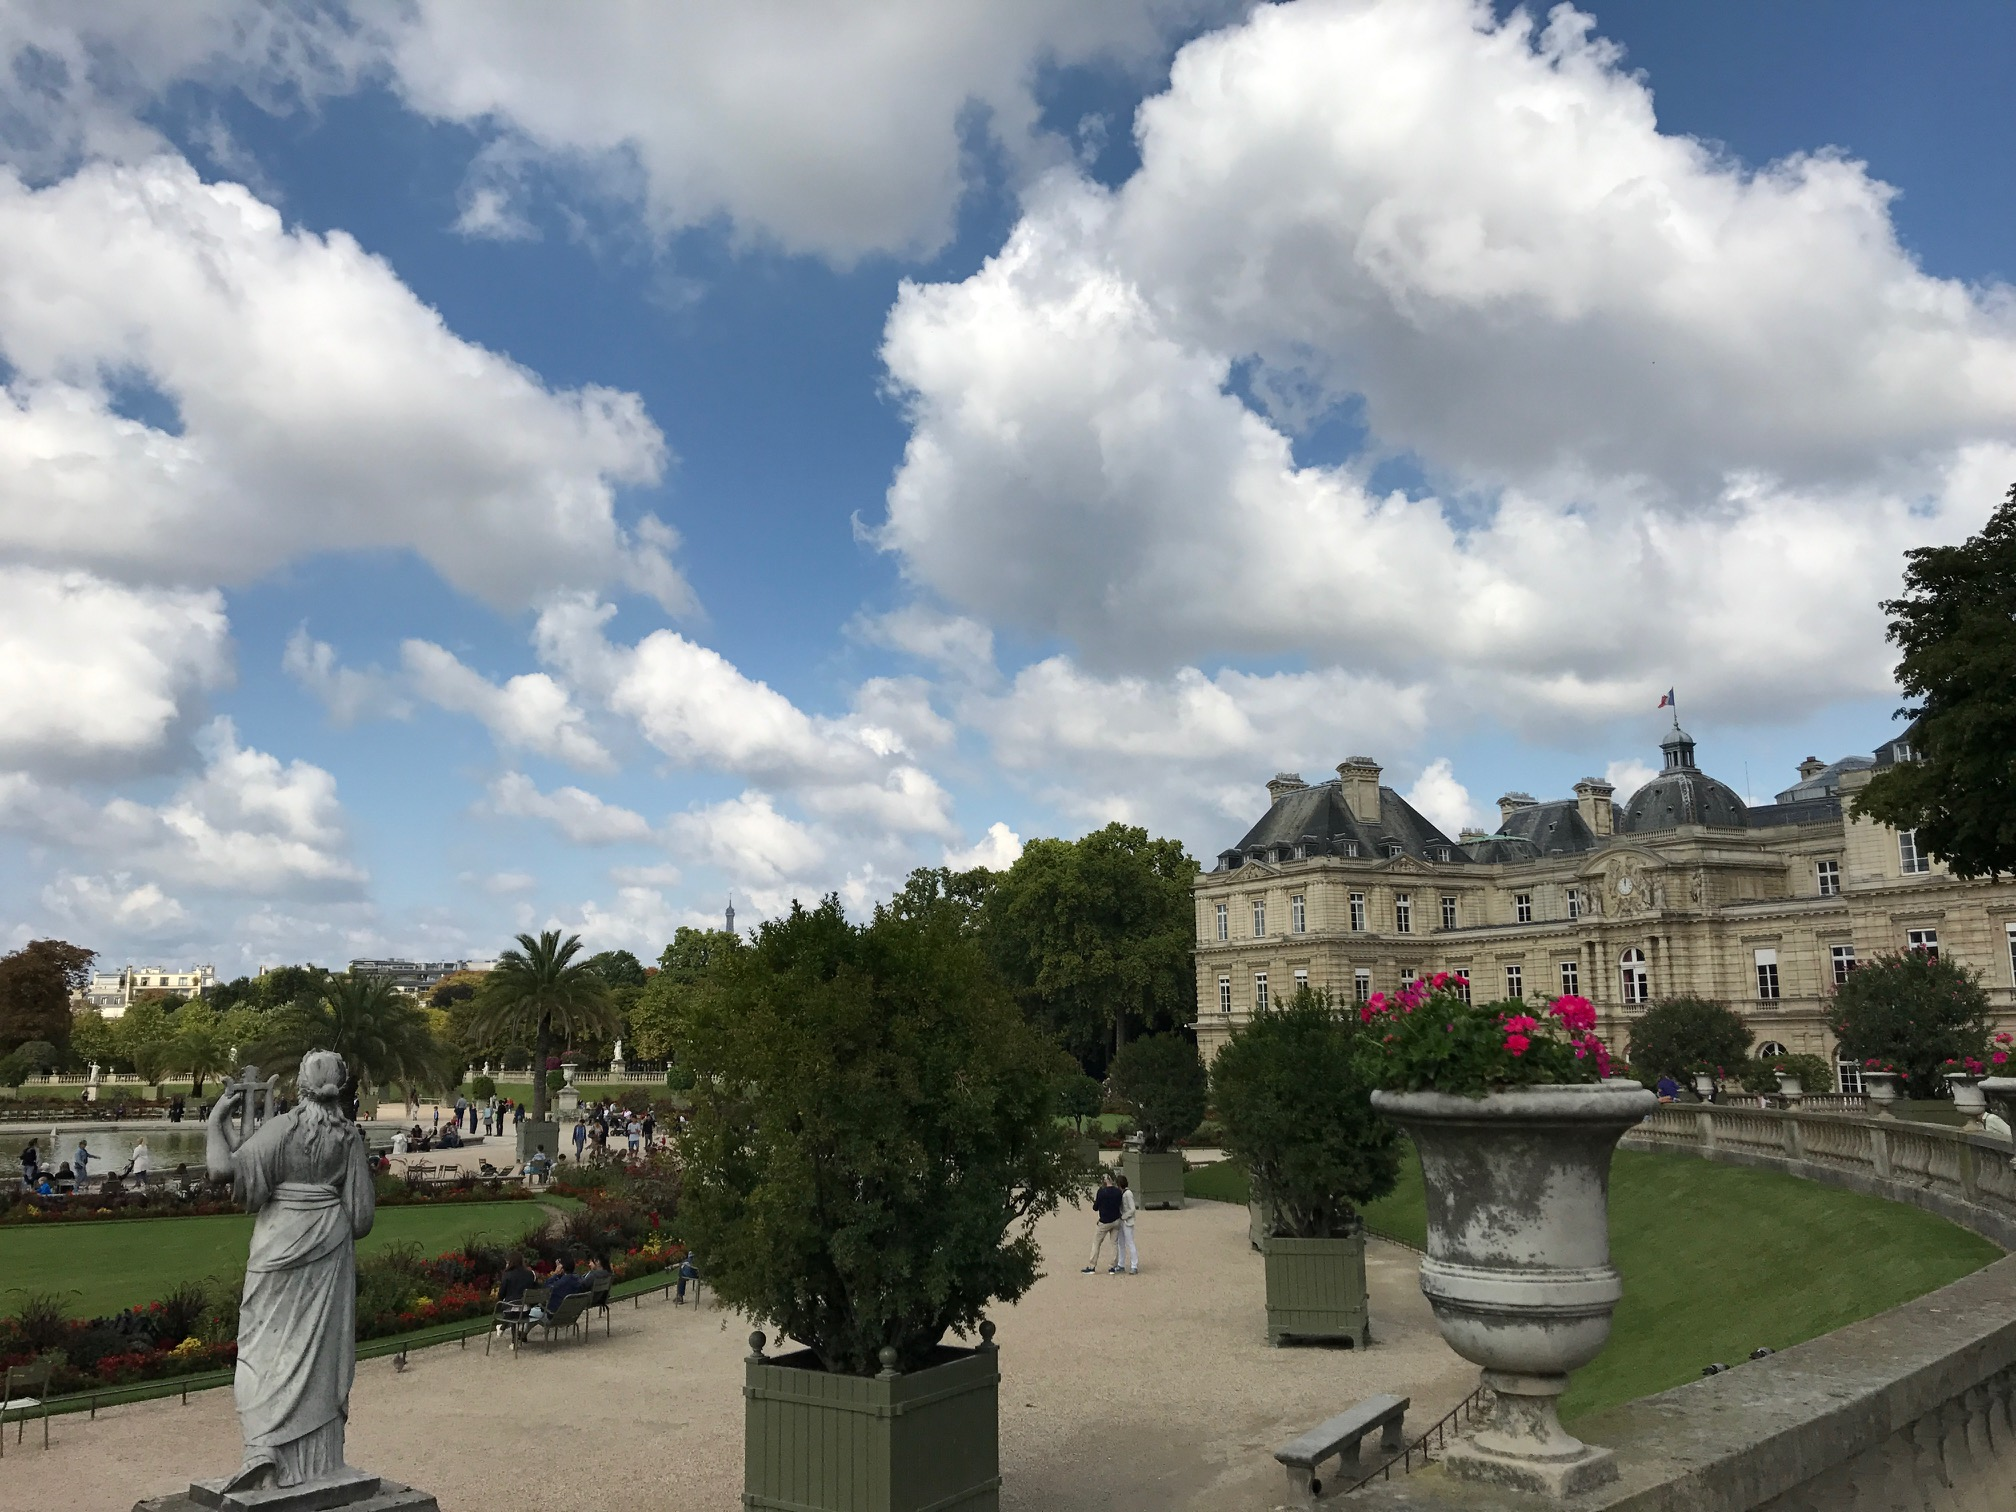 Paris is insanely beautiful (Jardin du Luxembourg)